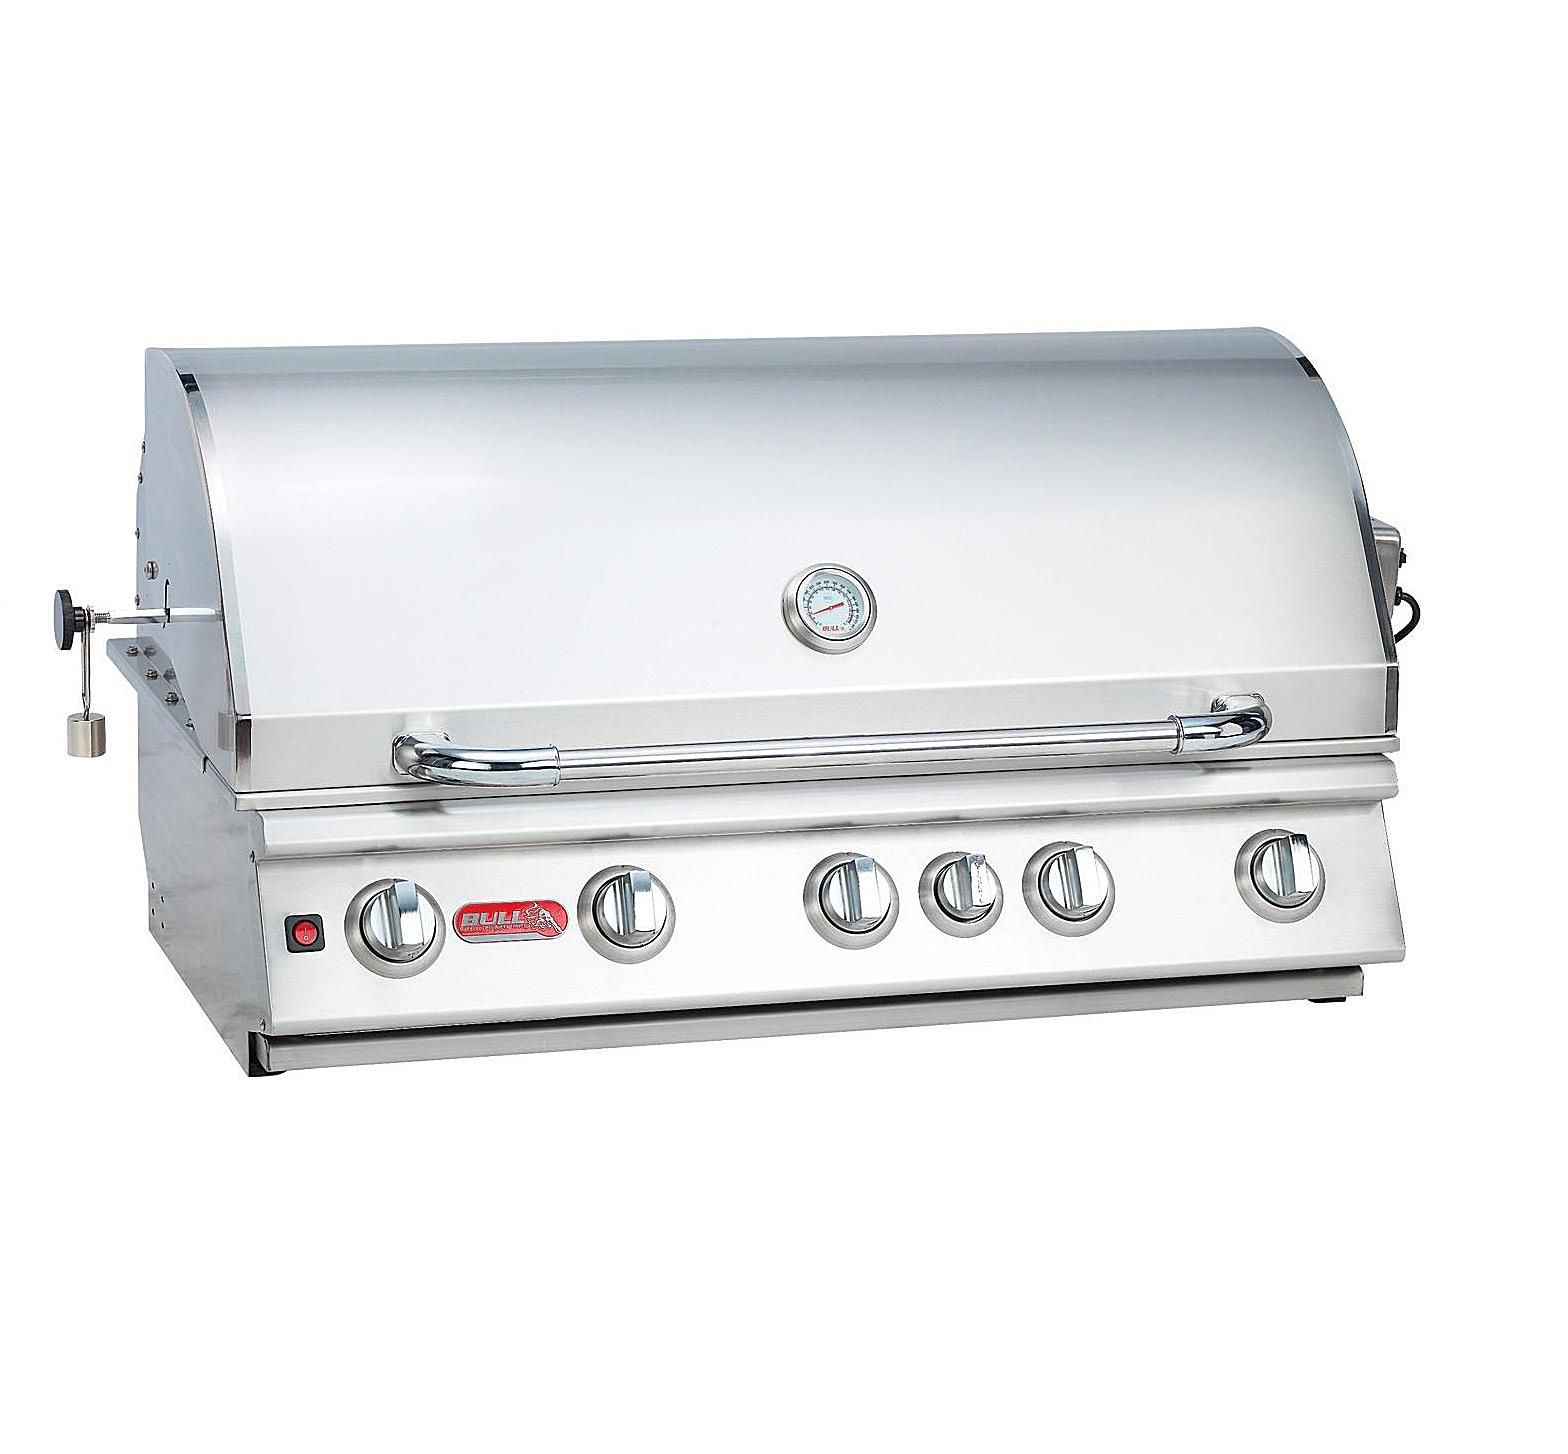 gas grill ratings and reviews for 2017